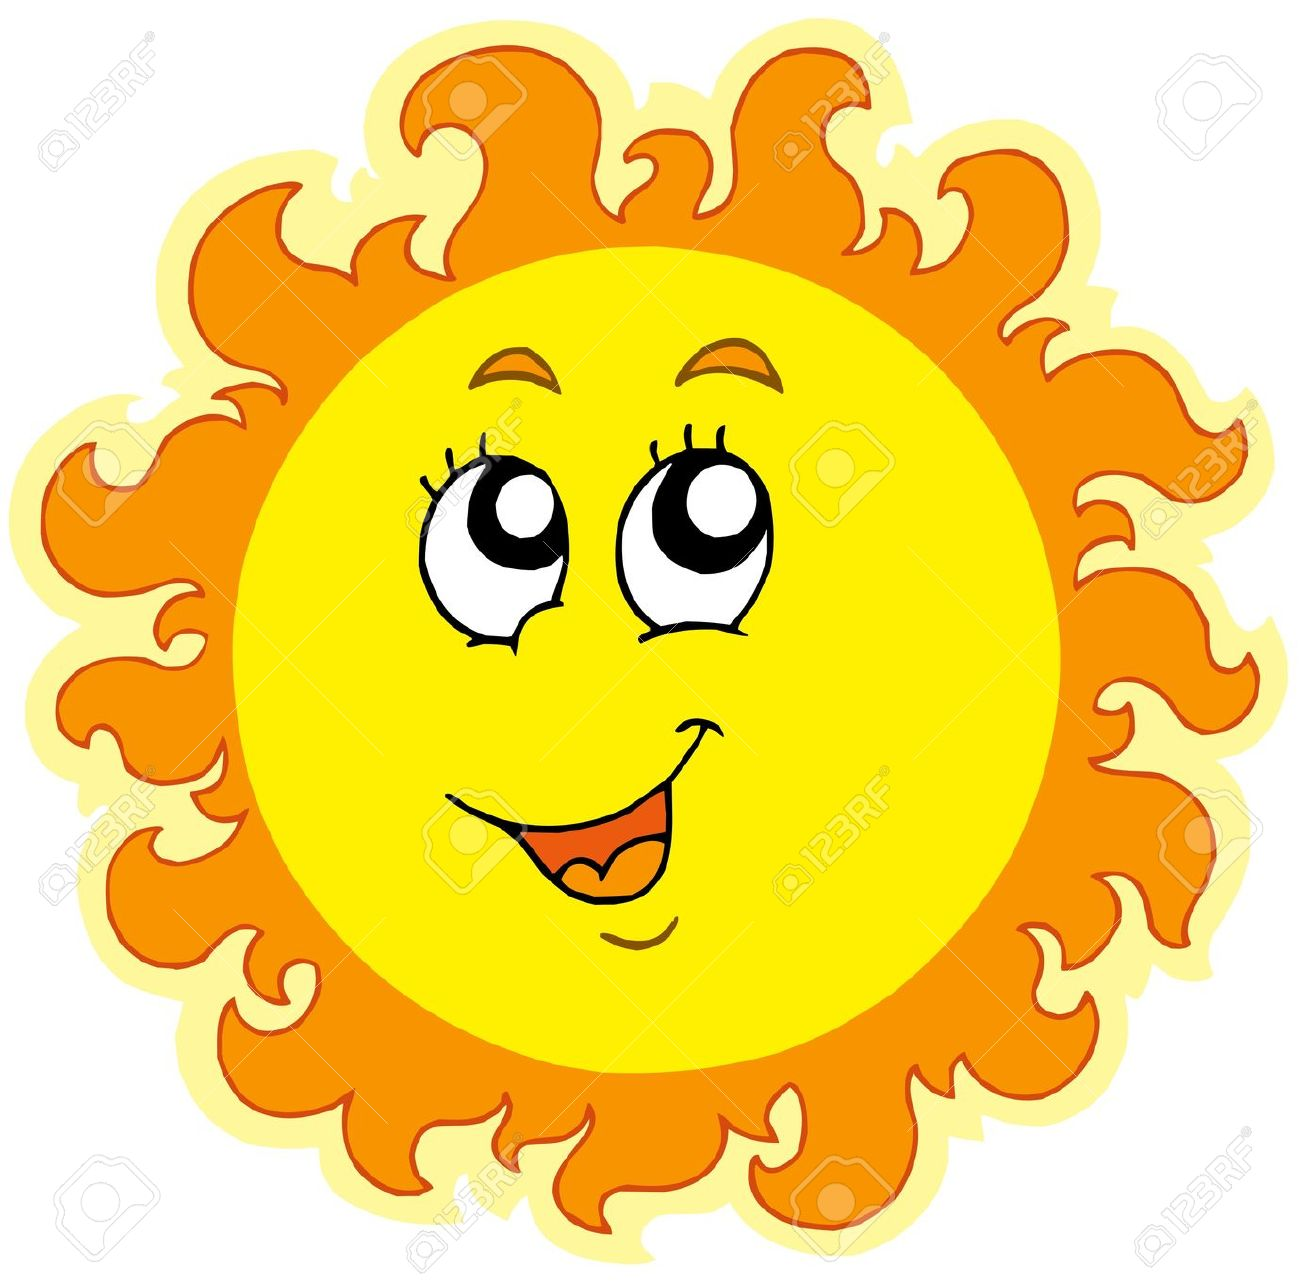 Clipart Sunshine Stock Photos Pictures Royalty Free Clipart